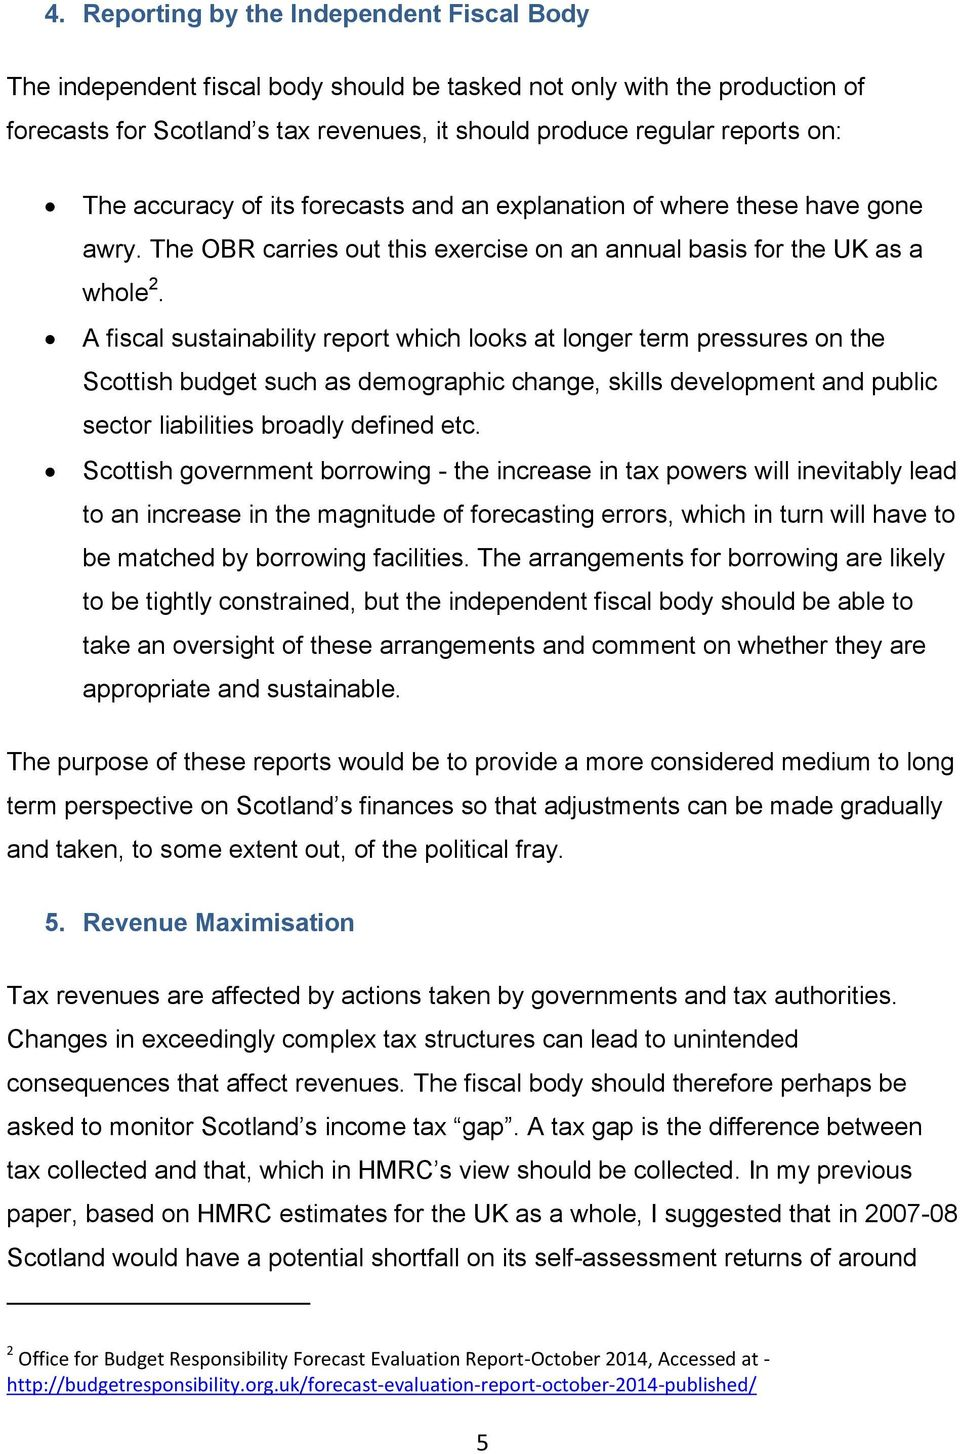 A fiscal sustainability report which looks at longer term pressures on the Scottish budget such as demographic change, skills development and public sector liabilities broadly defined etc.